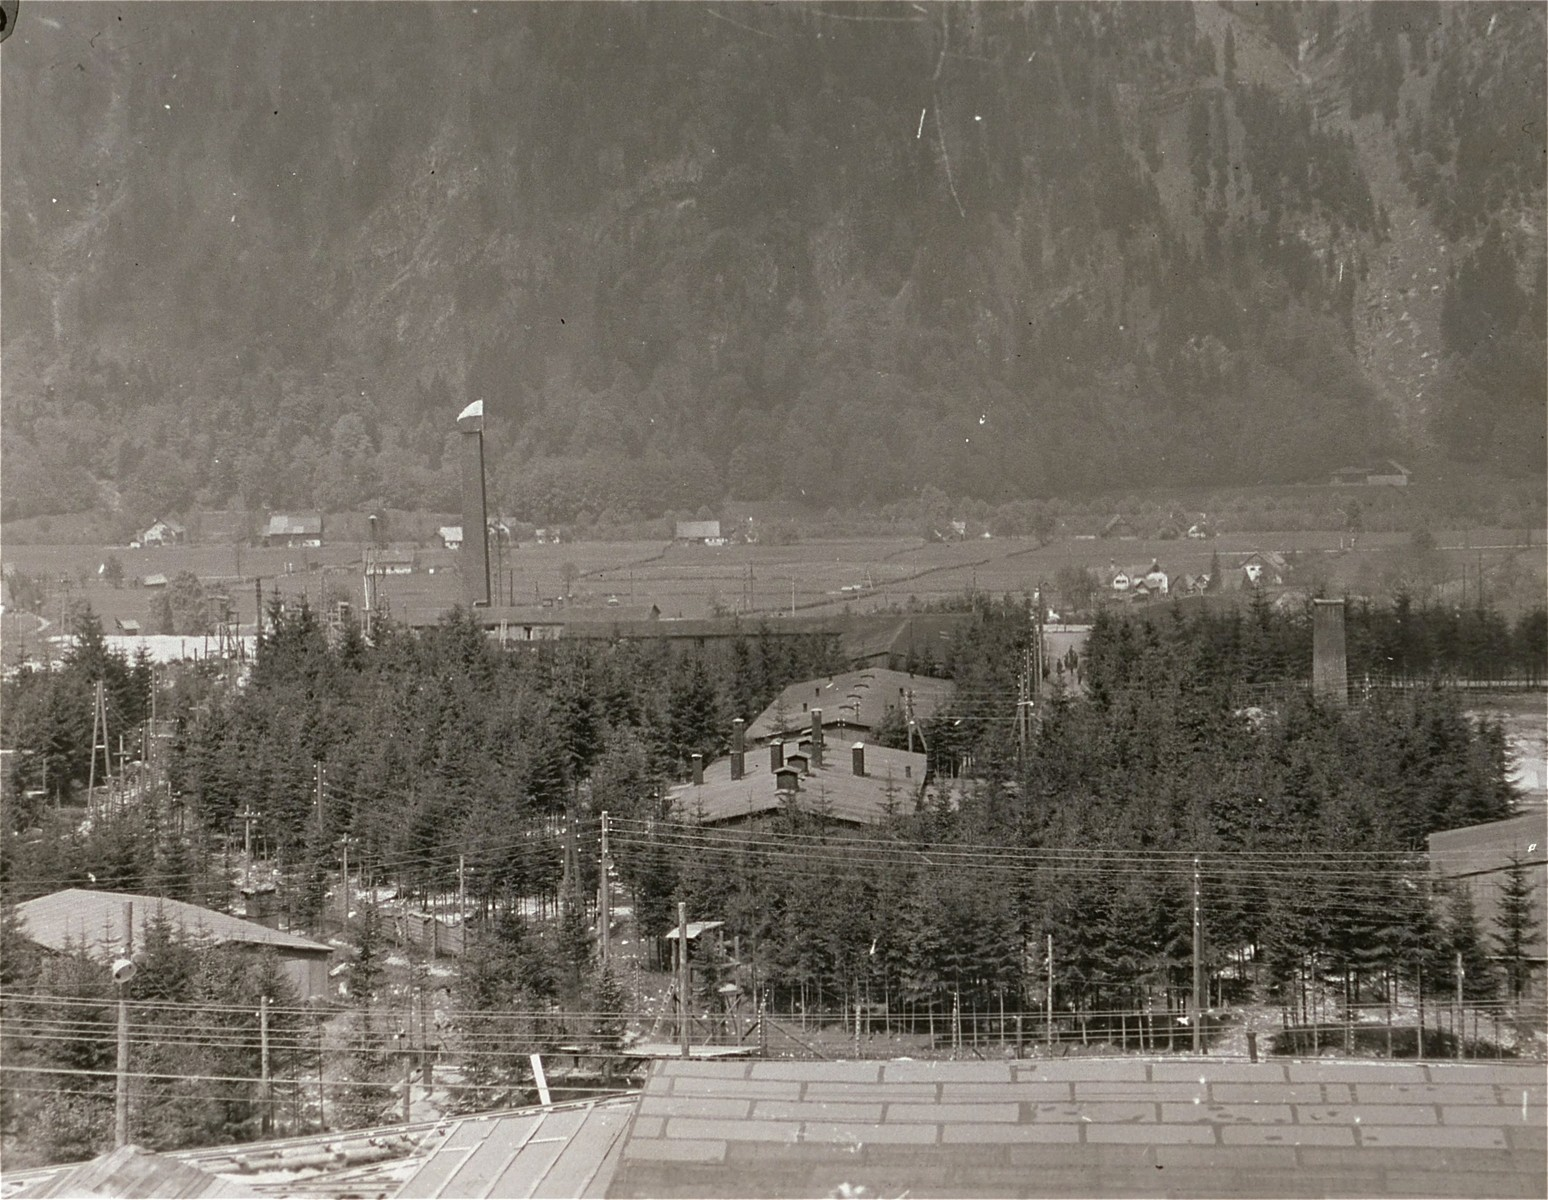 A view of the Ebensee concentration camp.